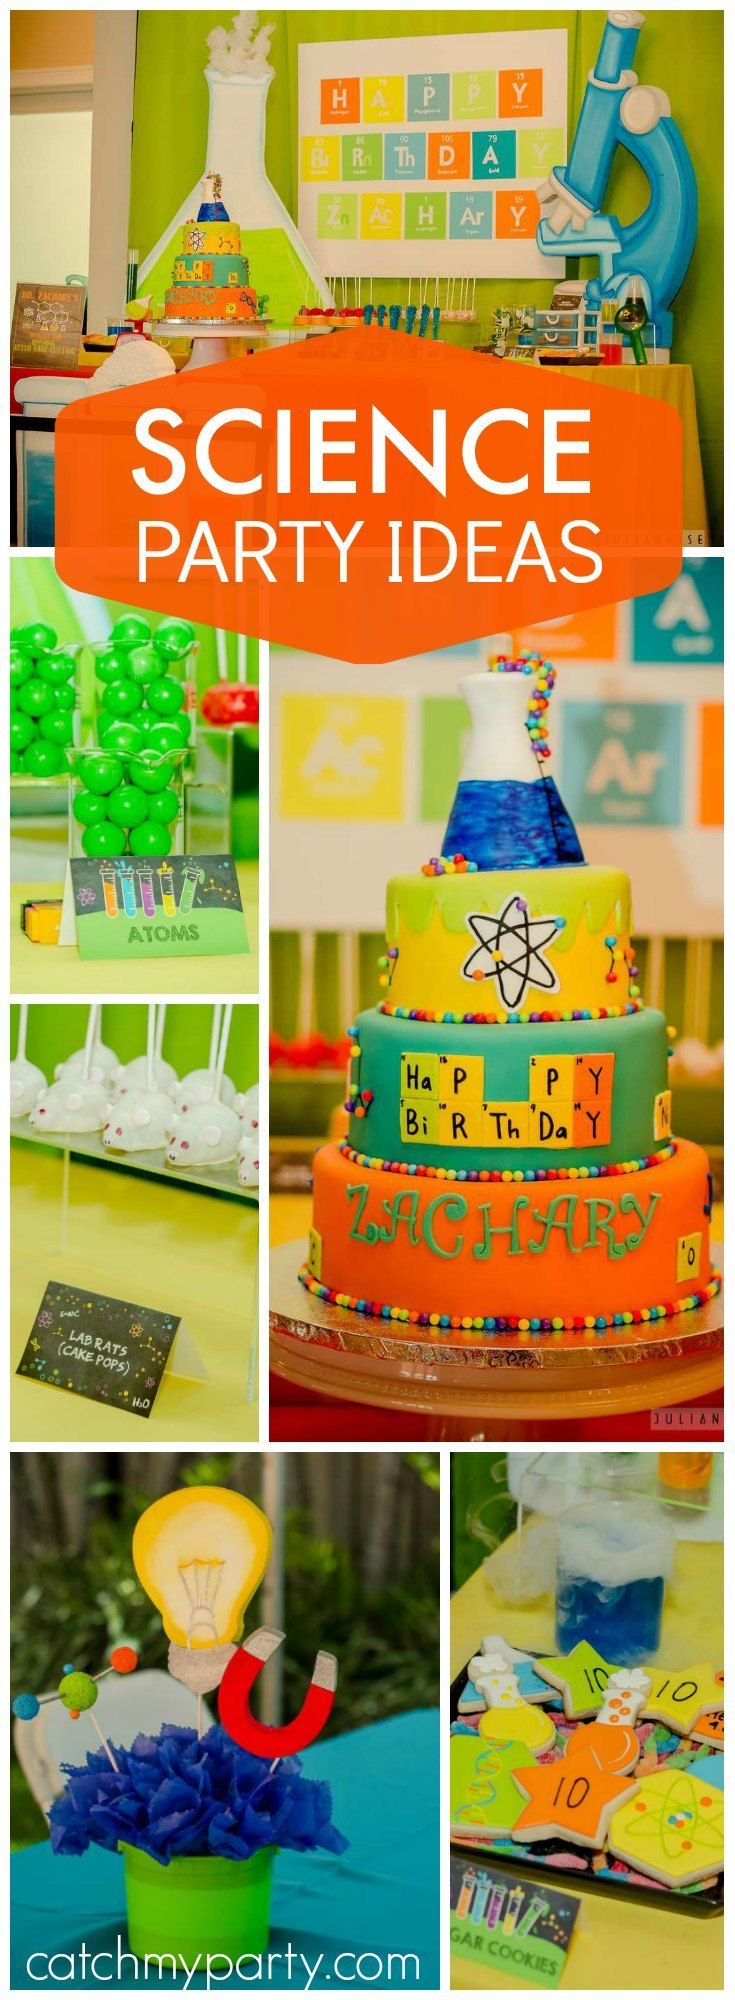 Such great ideas at this science themed boy birthday party! See more party ideas at Catchmyparty.com!